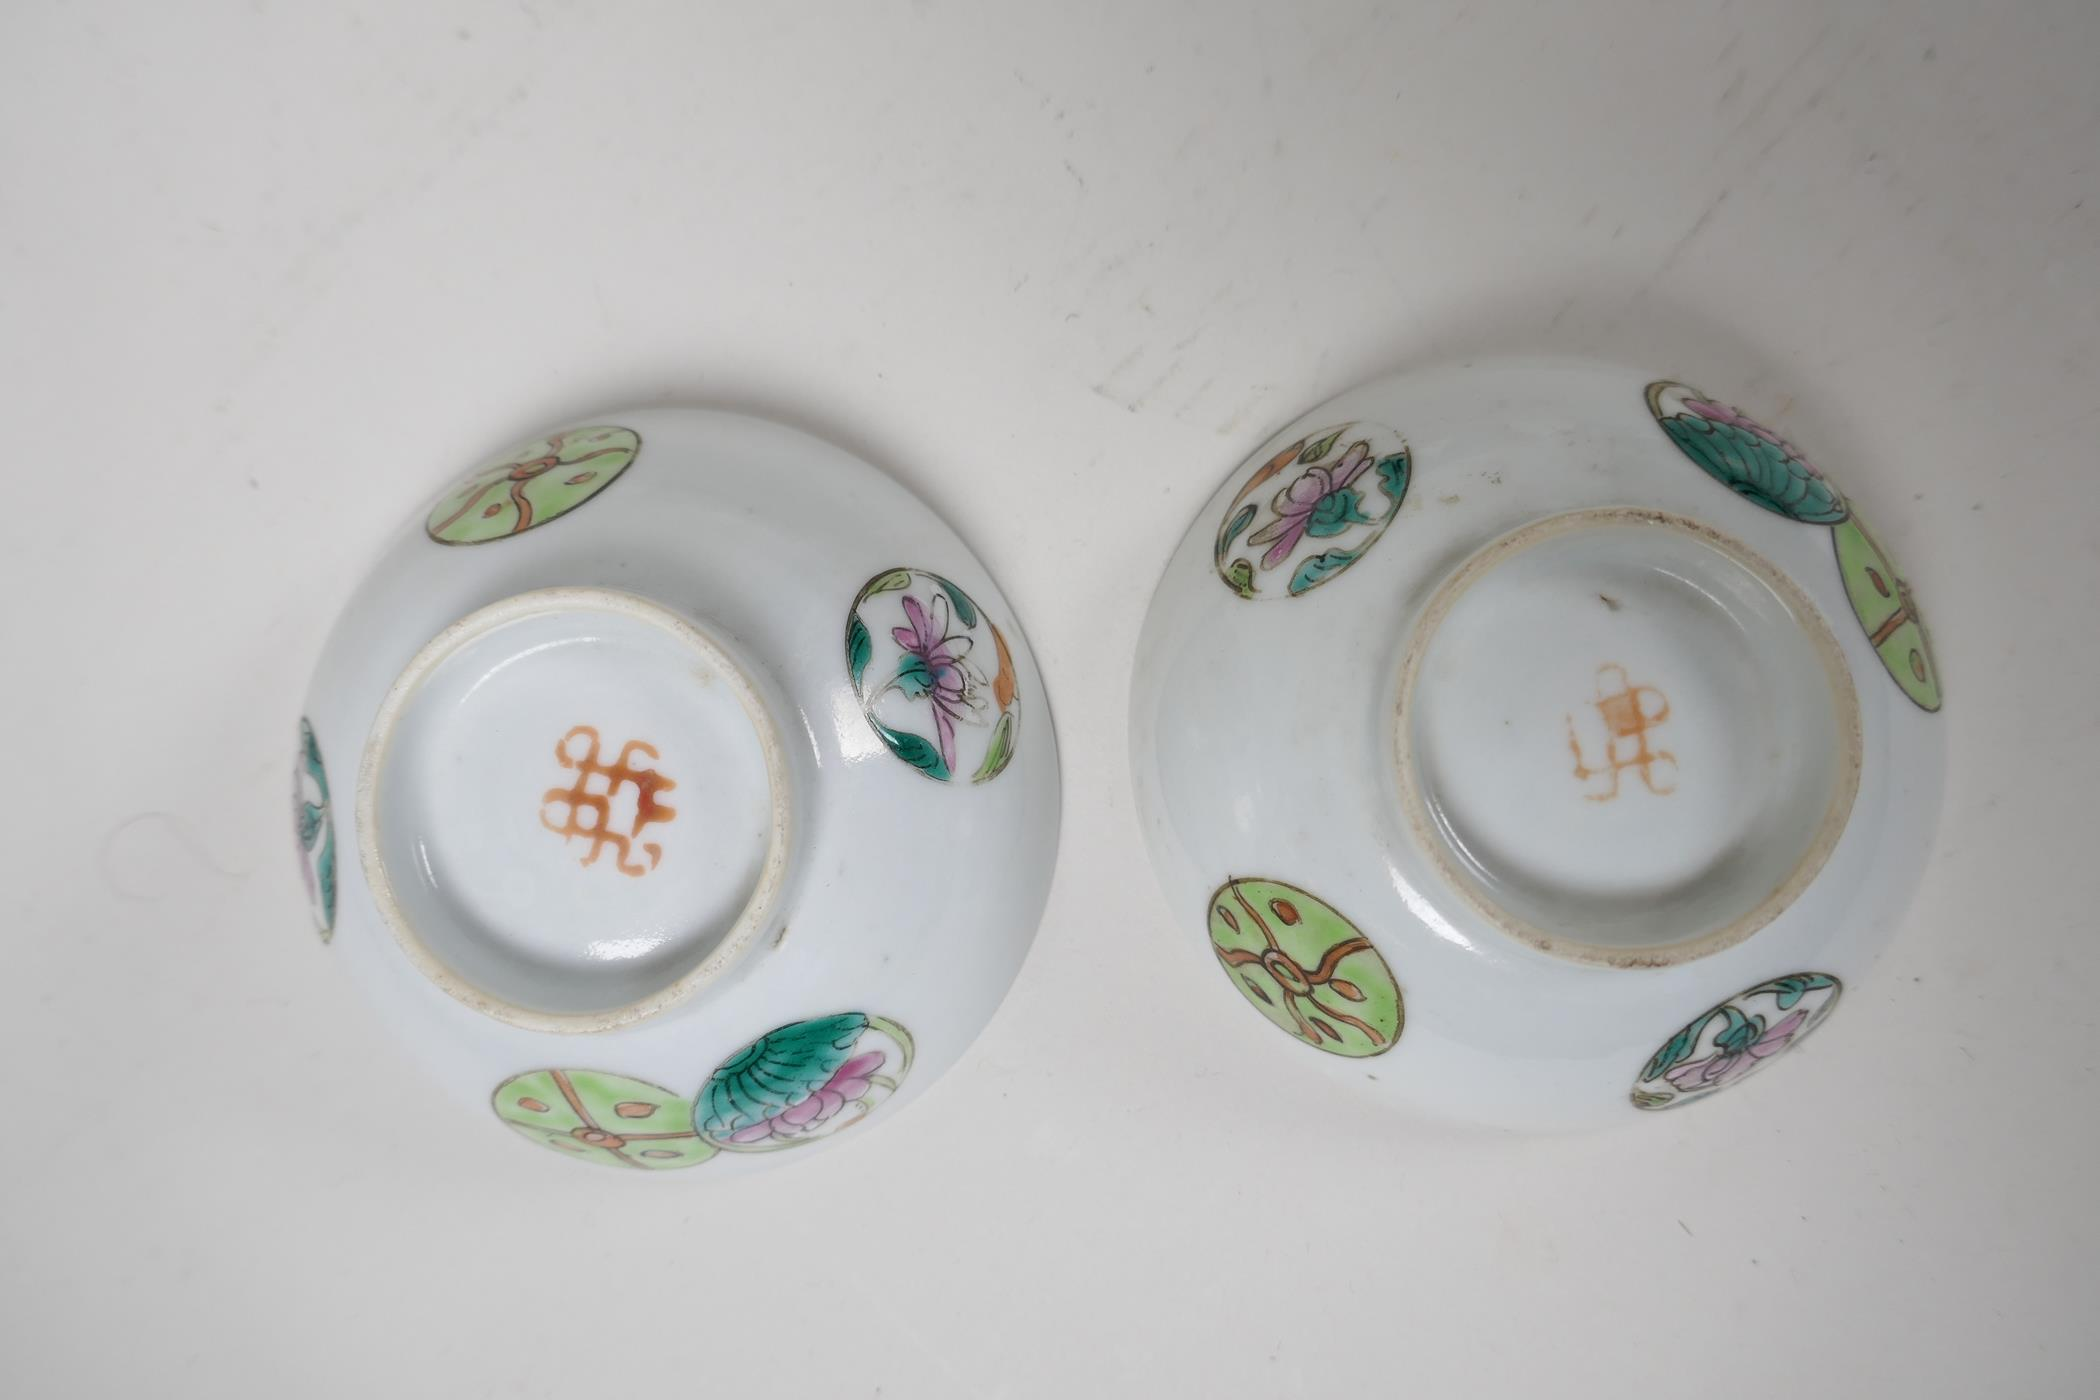 Six assorted Chinese republic period porcelain tea bowls with famille rose and vert enamel - Image 2 of 7